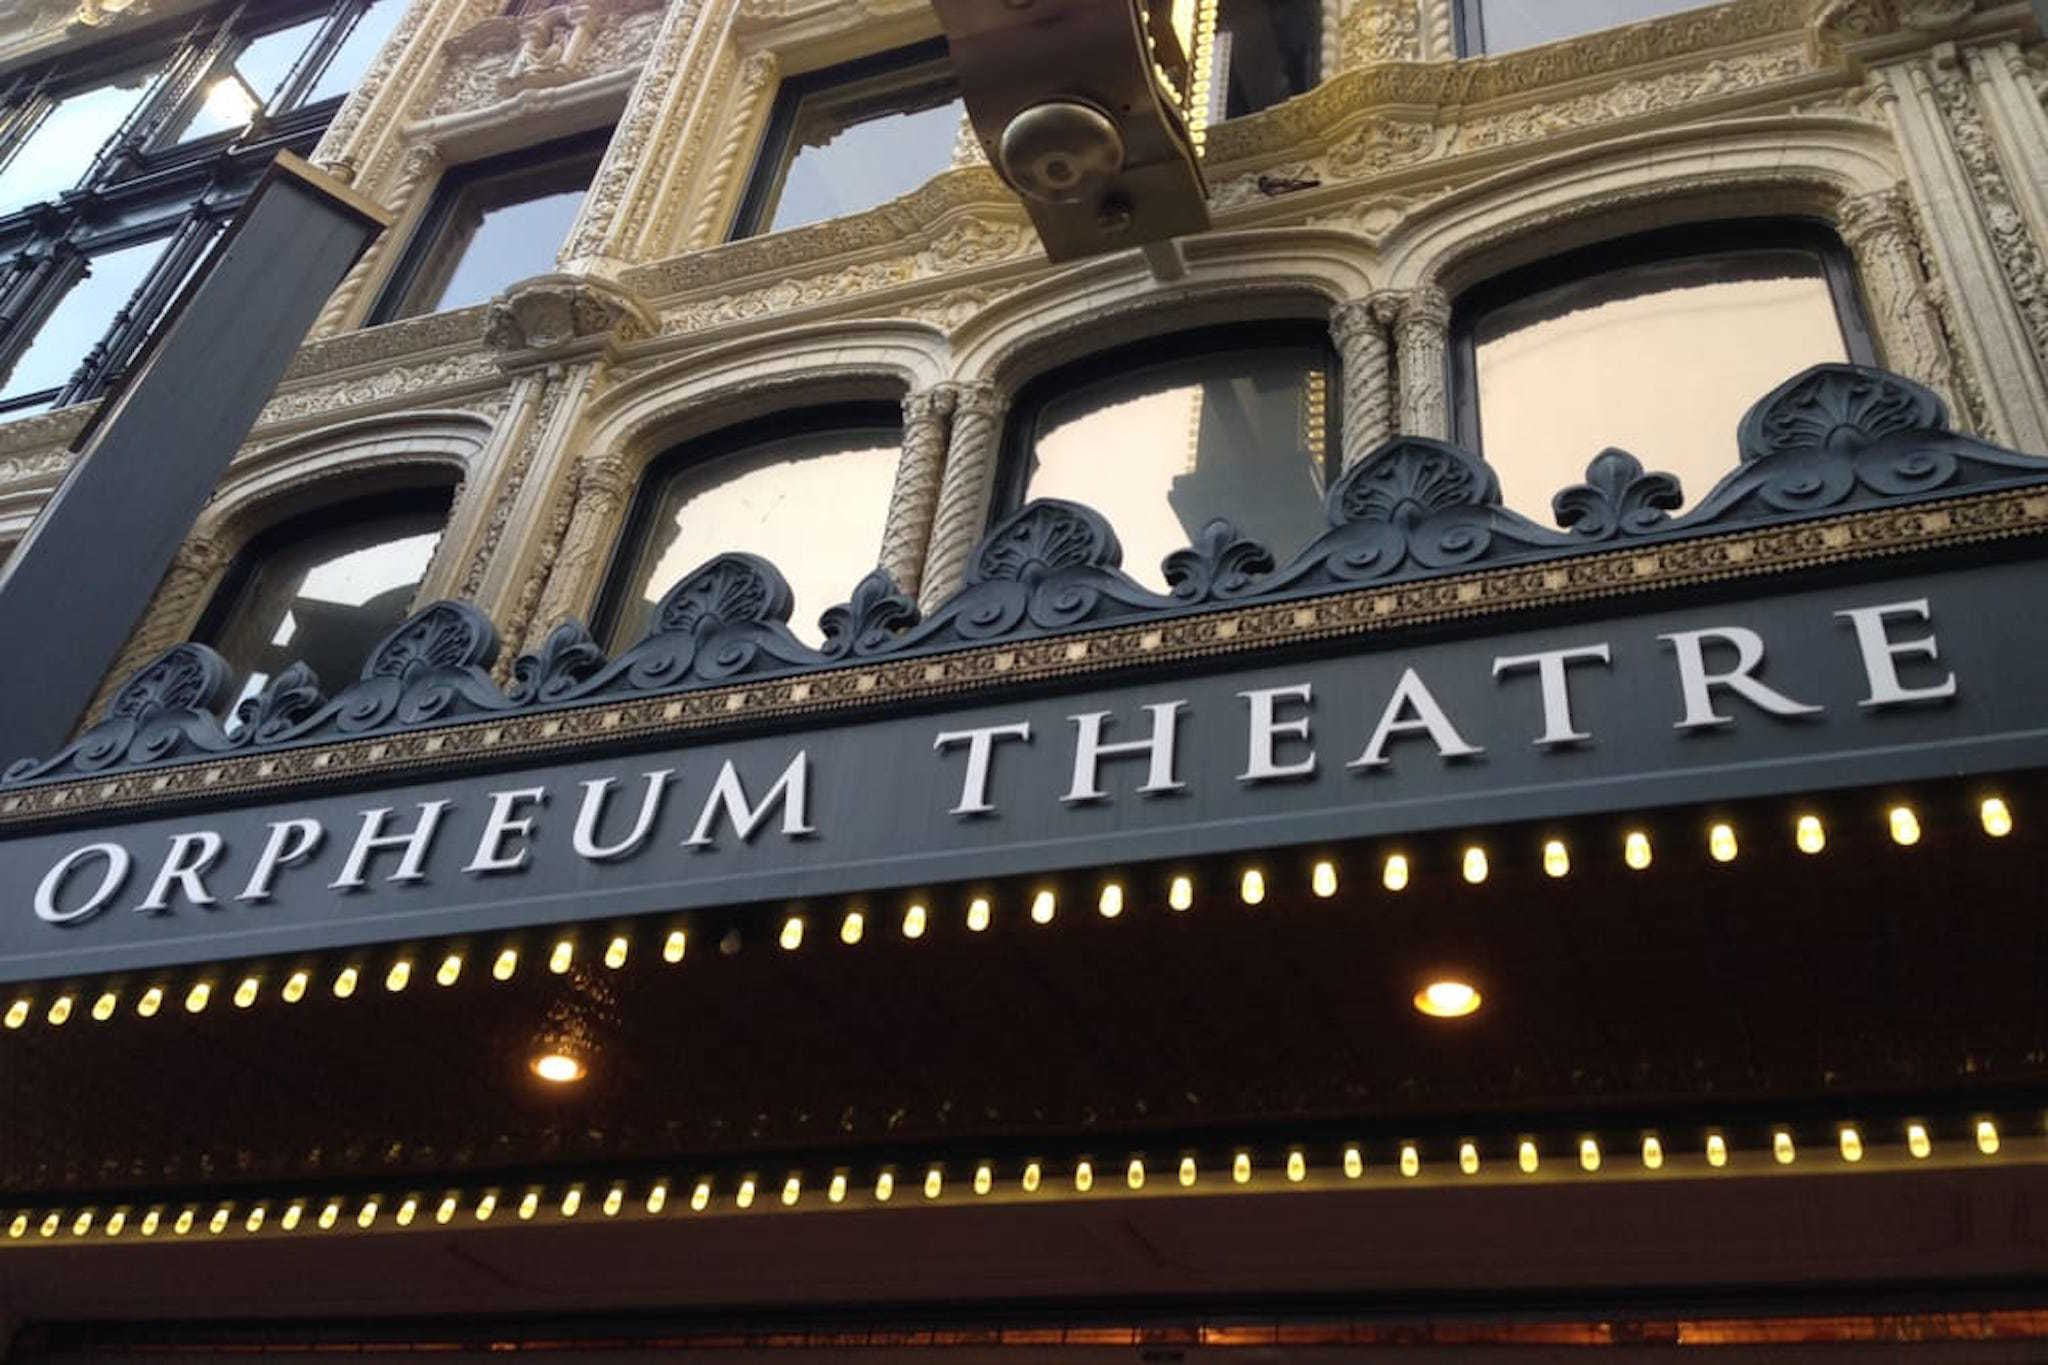 SHN Orpheum Theater front sign